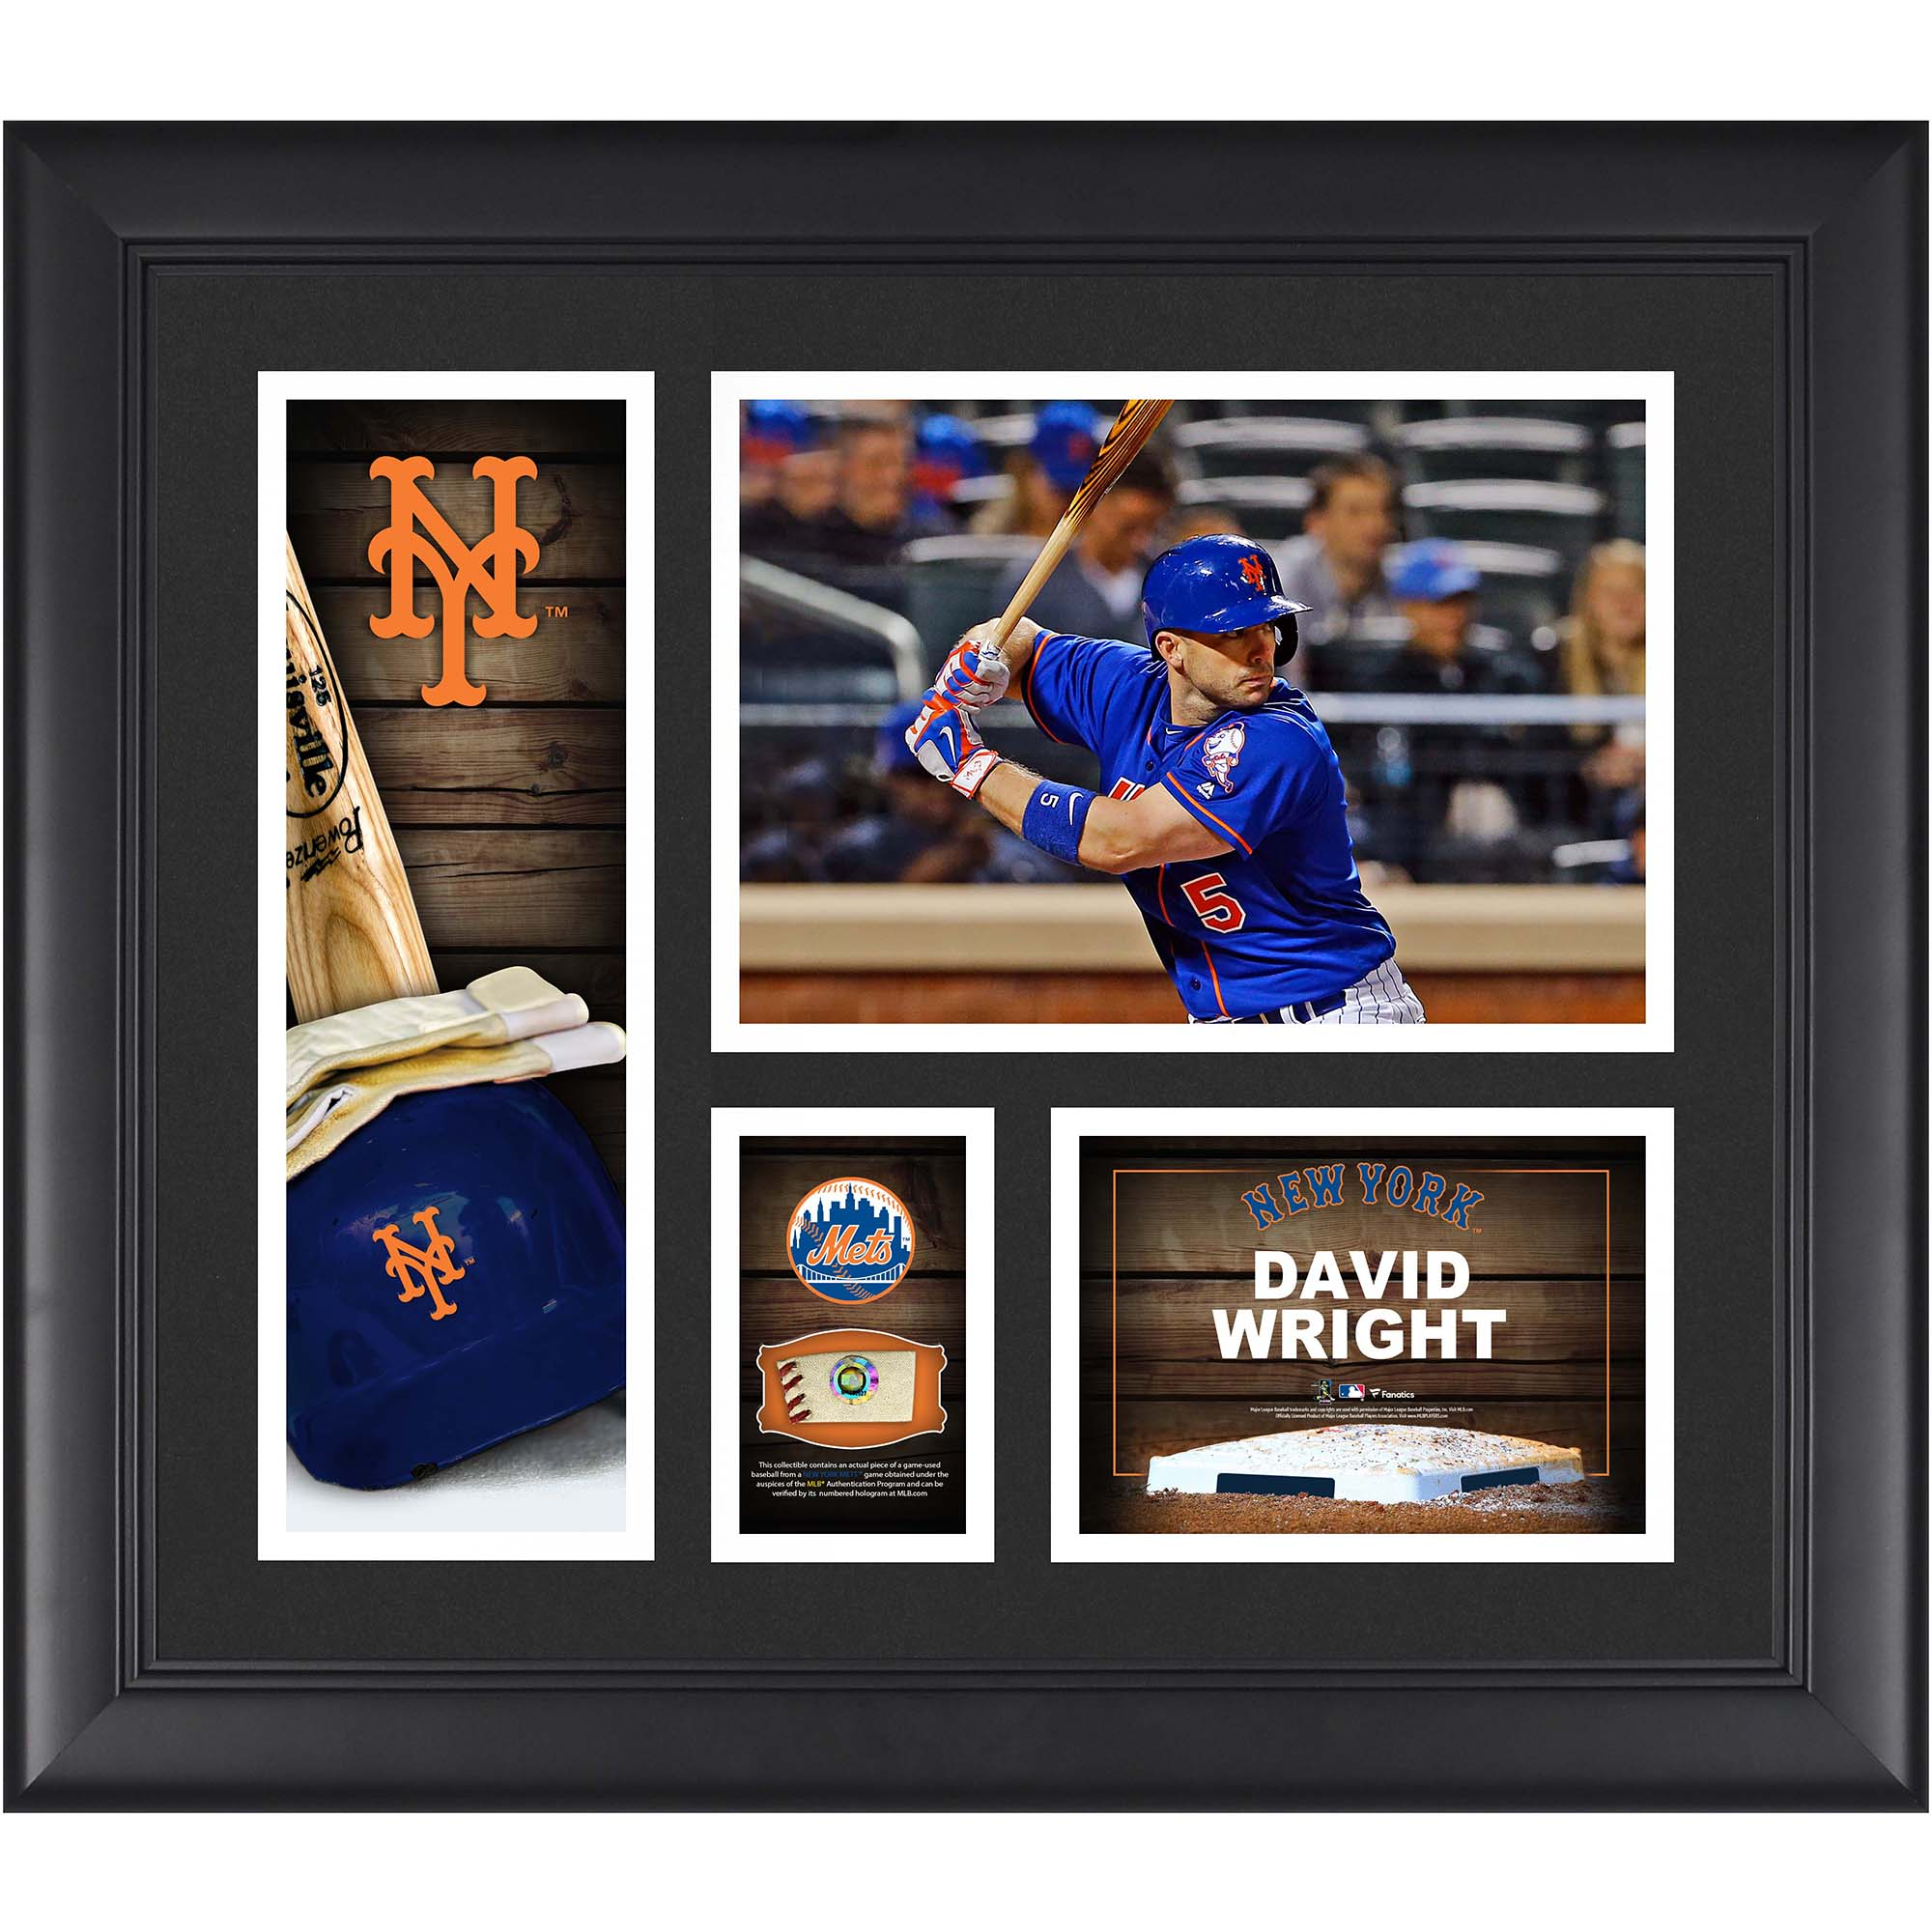 """David Wright New York Mets Fanatics Authentic Framed 15"""" x 17"""" Player Collage with a Piece of Game-Used Ball - No Size"""